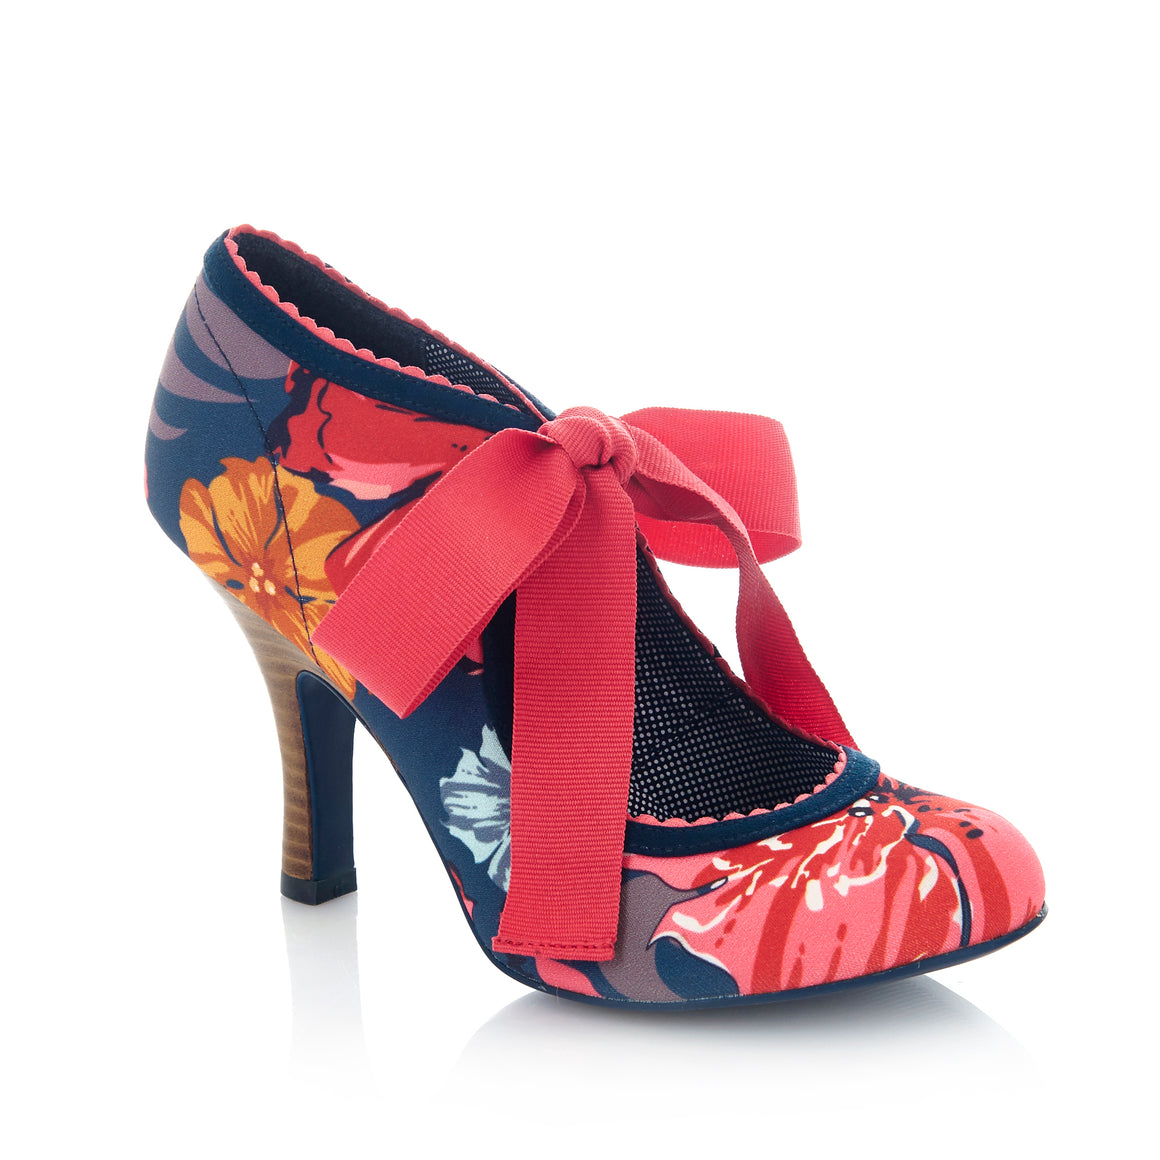 Ruby Shoo Willow Navy Coral Floral Print Ribbon Tie Court Shoes - Pretty Kitty Fashion